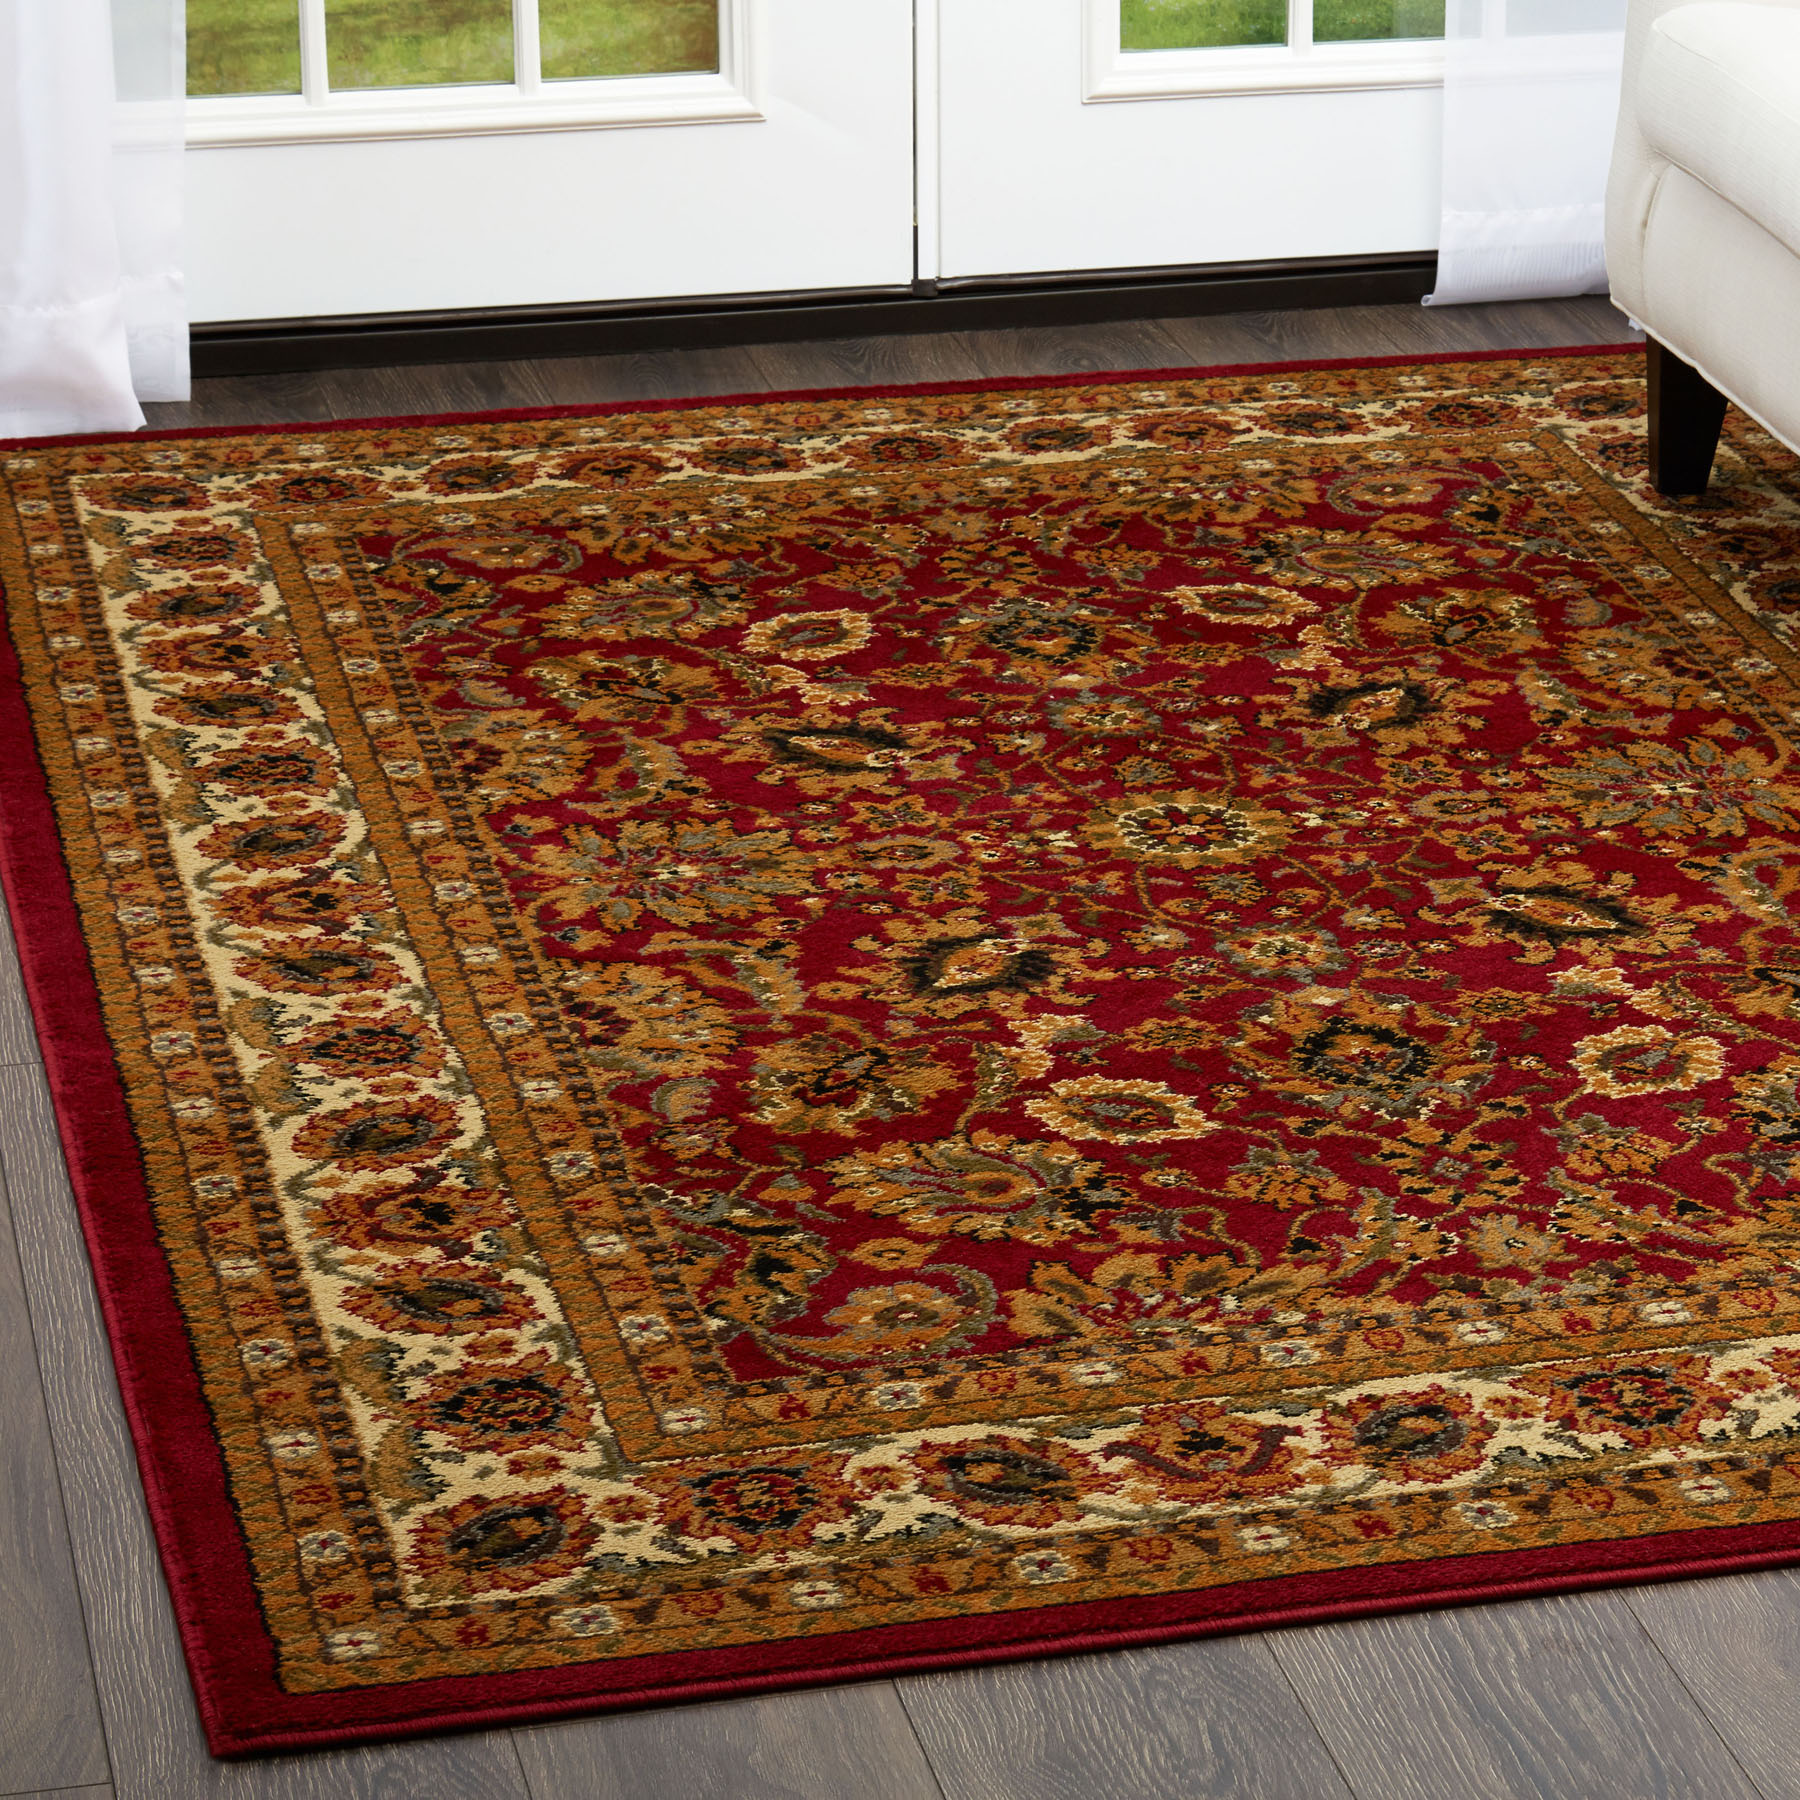 Red Oriental Area Rug Persian Style Floral Vines Oval Round Carpet